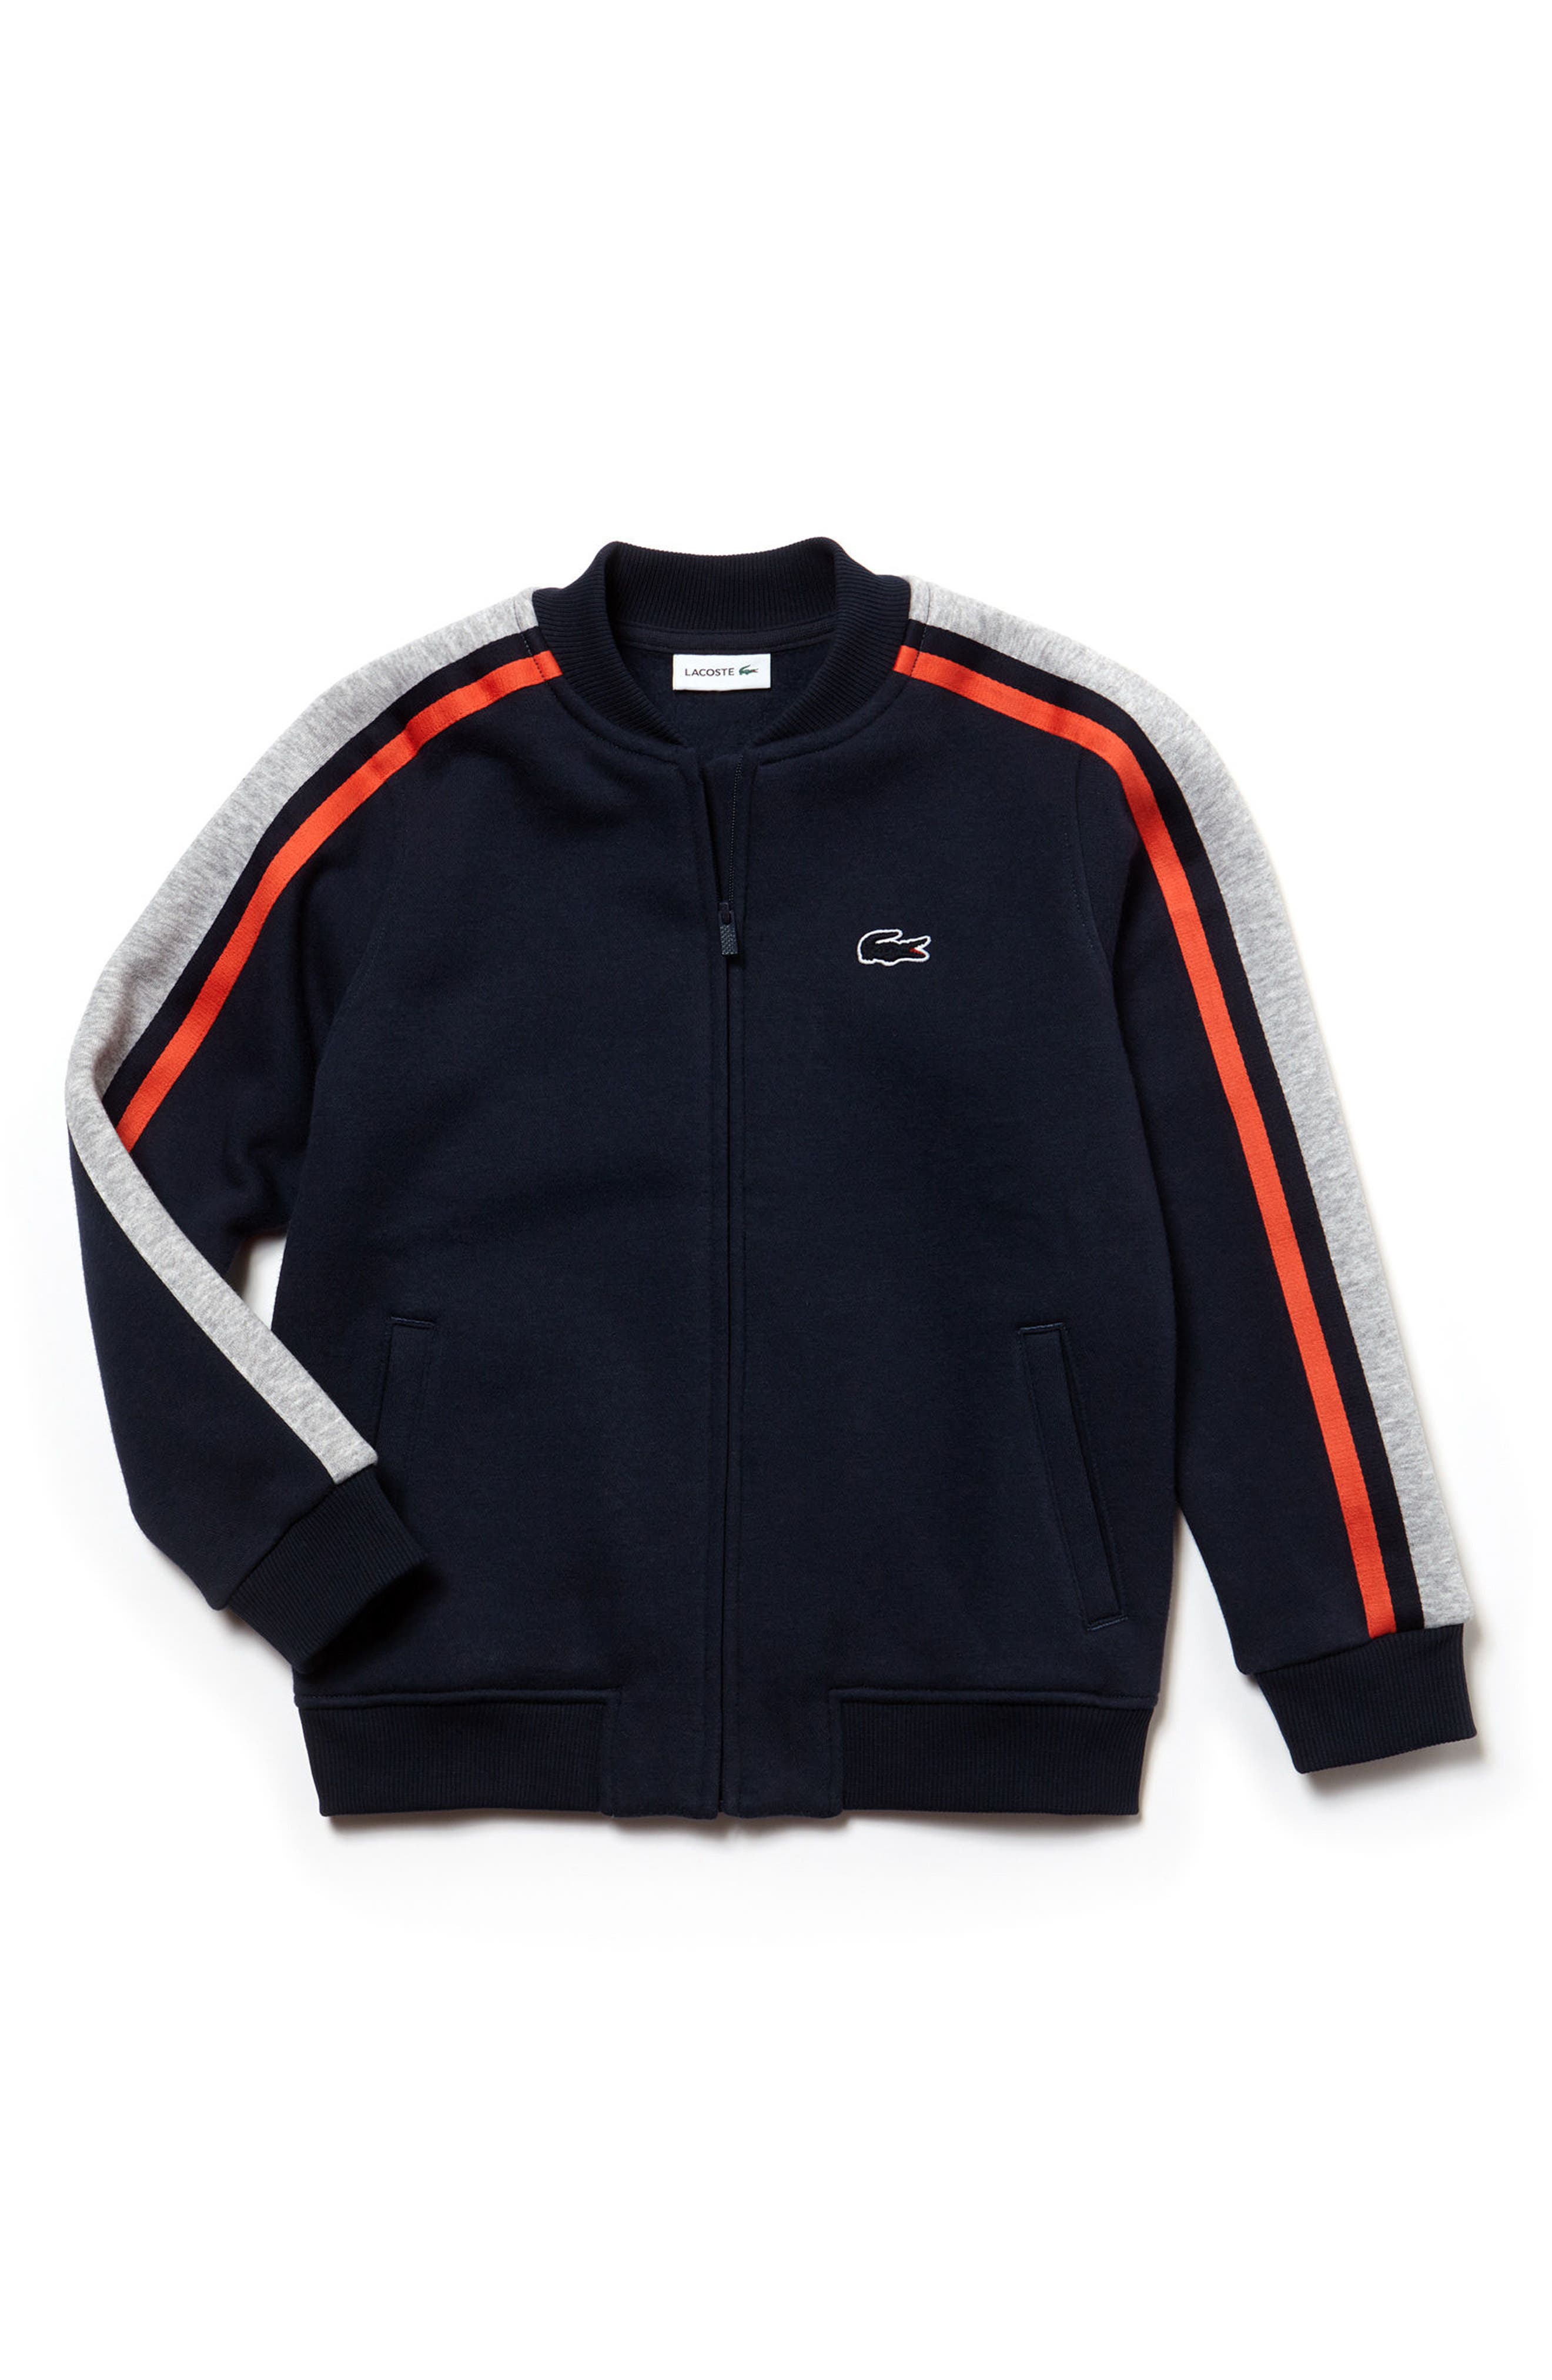 Athleisure Zip Jacket,                             Main thumbnail 1, color,                             Navy Blue/ Silver Chine